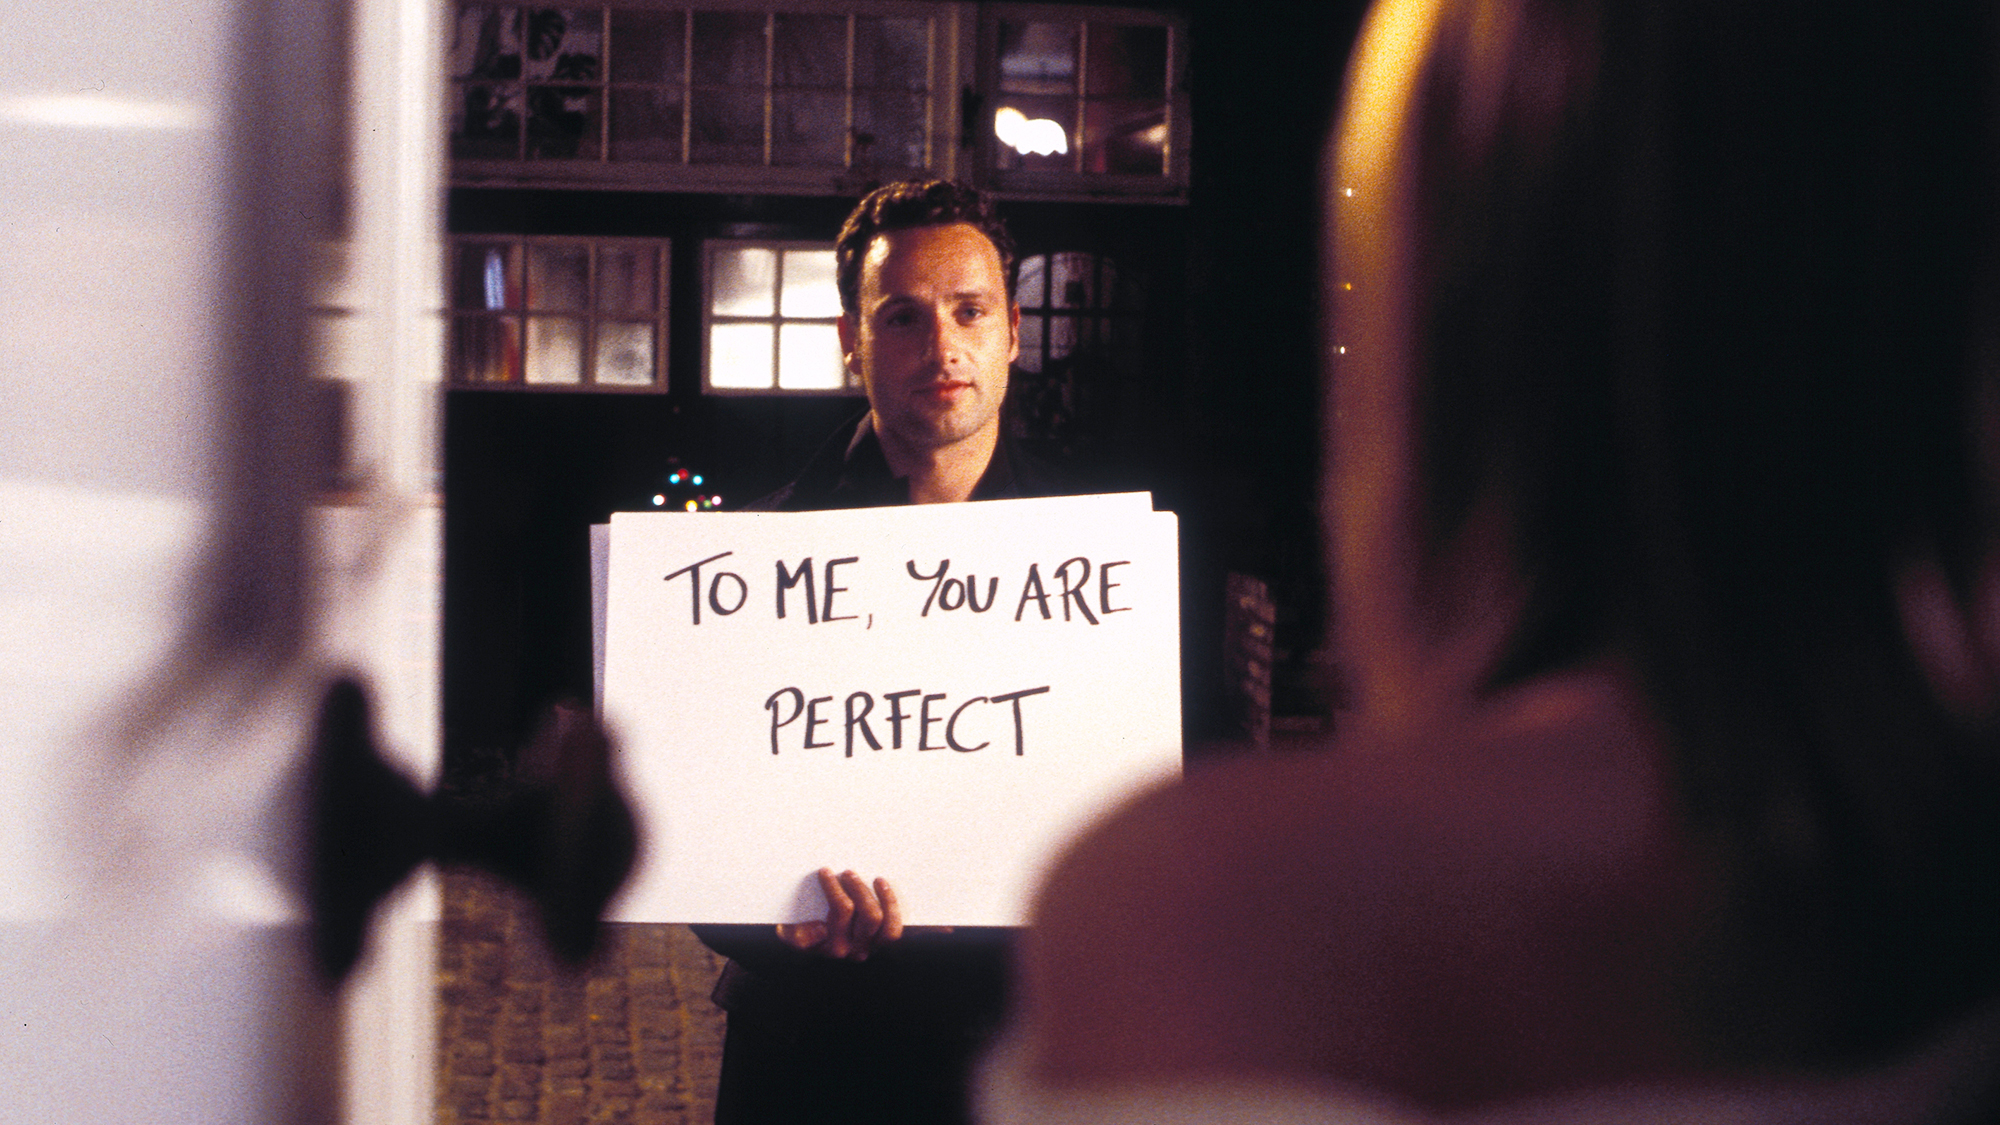 Director Richard Curtis shares the one thing he'd change about Love Actually